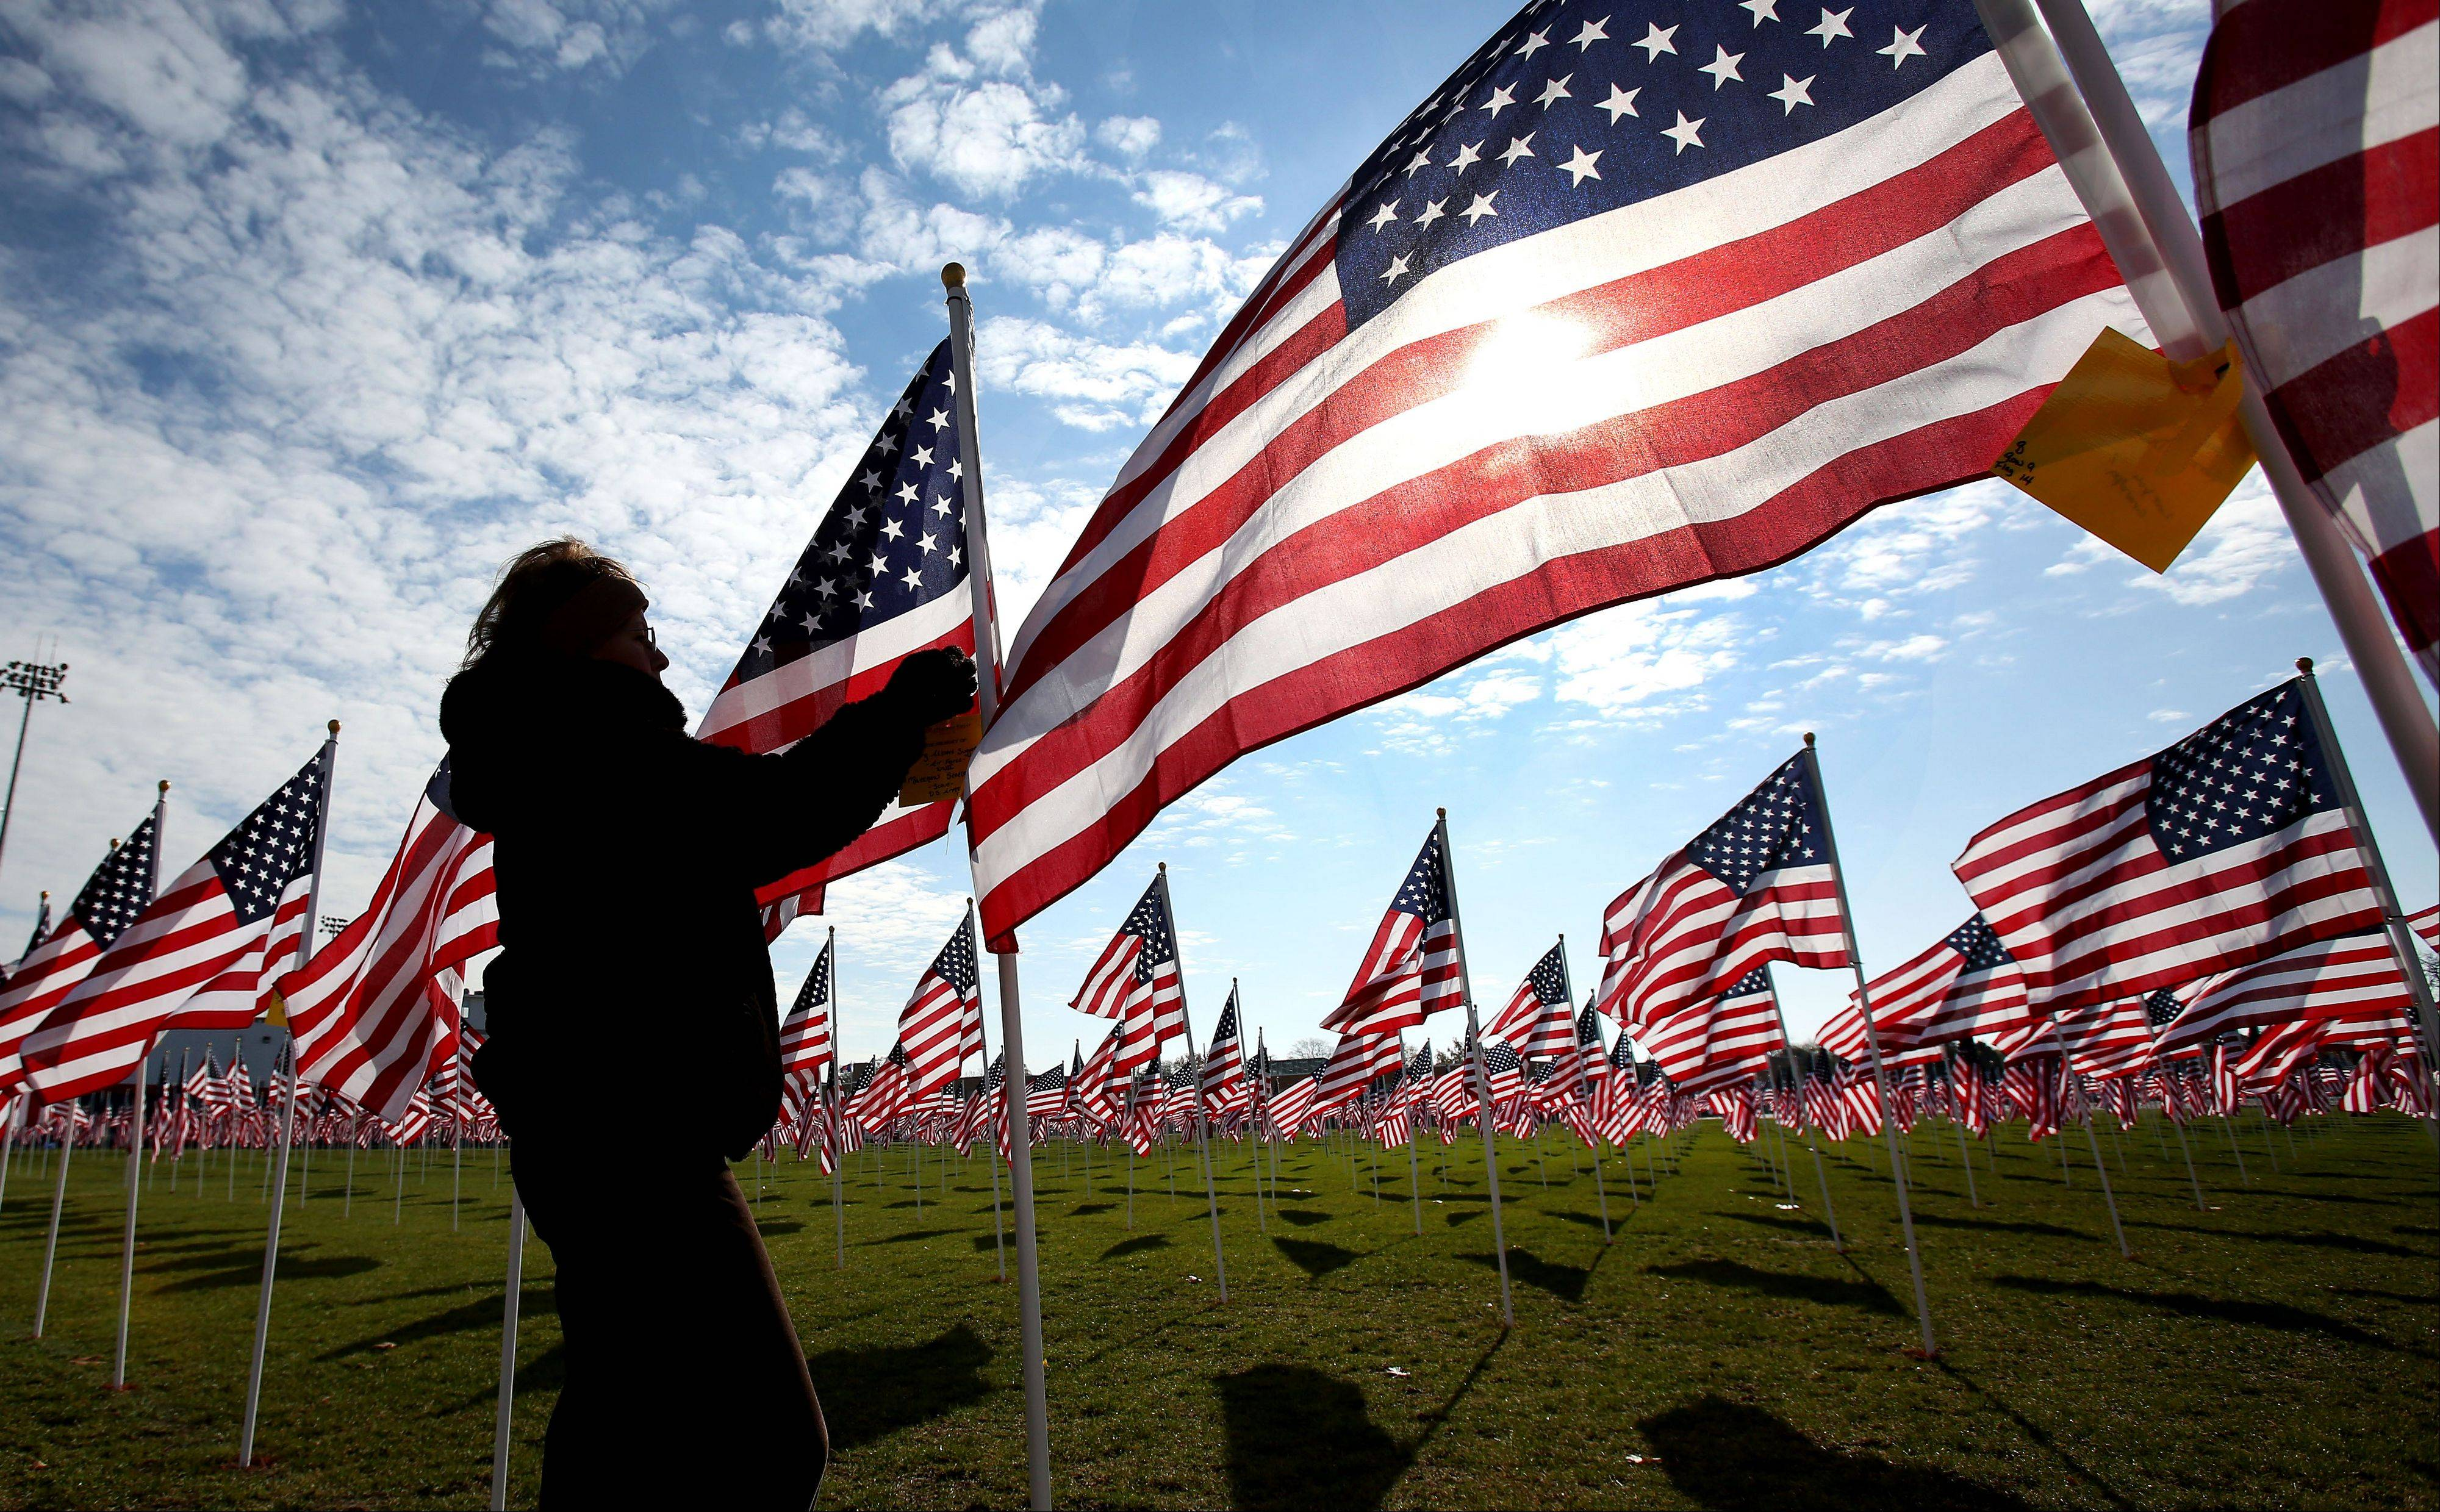 Aurora's Healing Field brings 'long overdue' honor